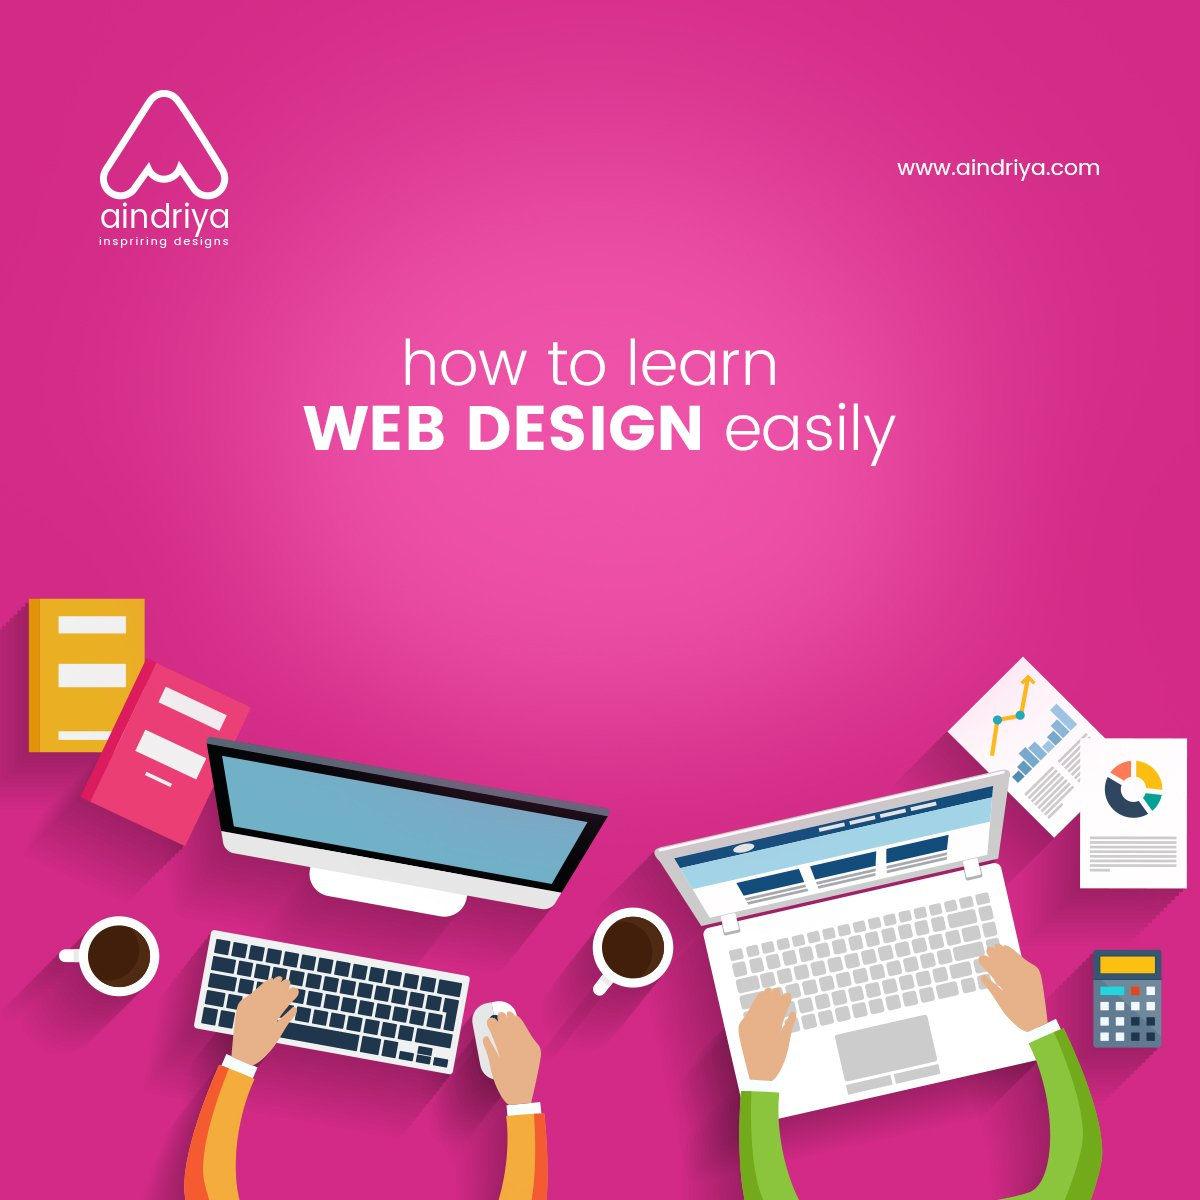 Watch How to Learn Web Design video